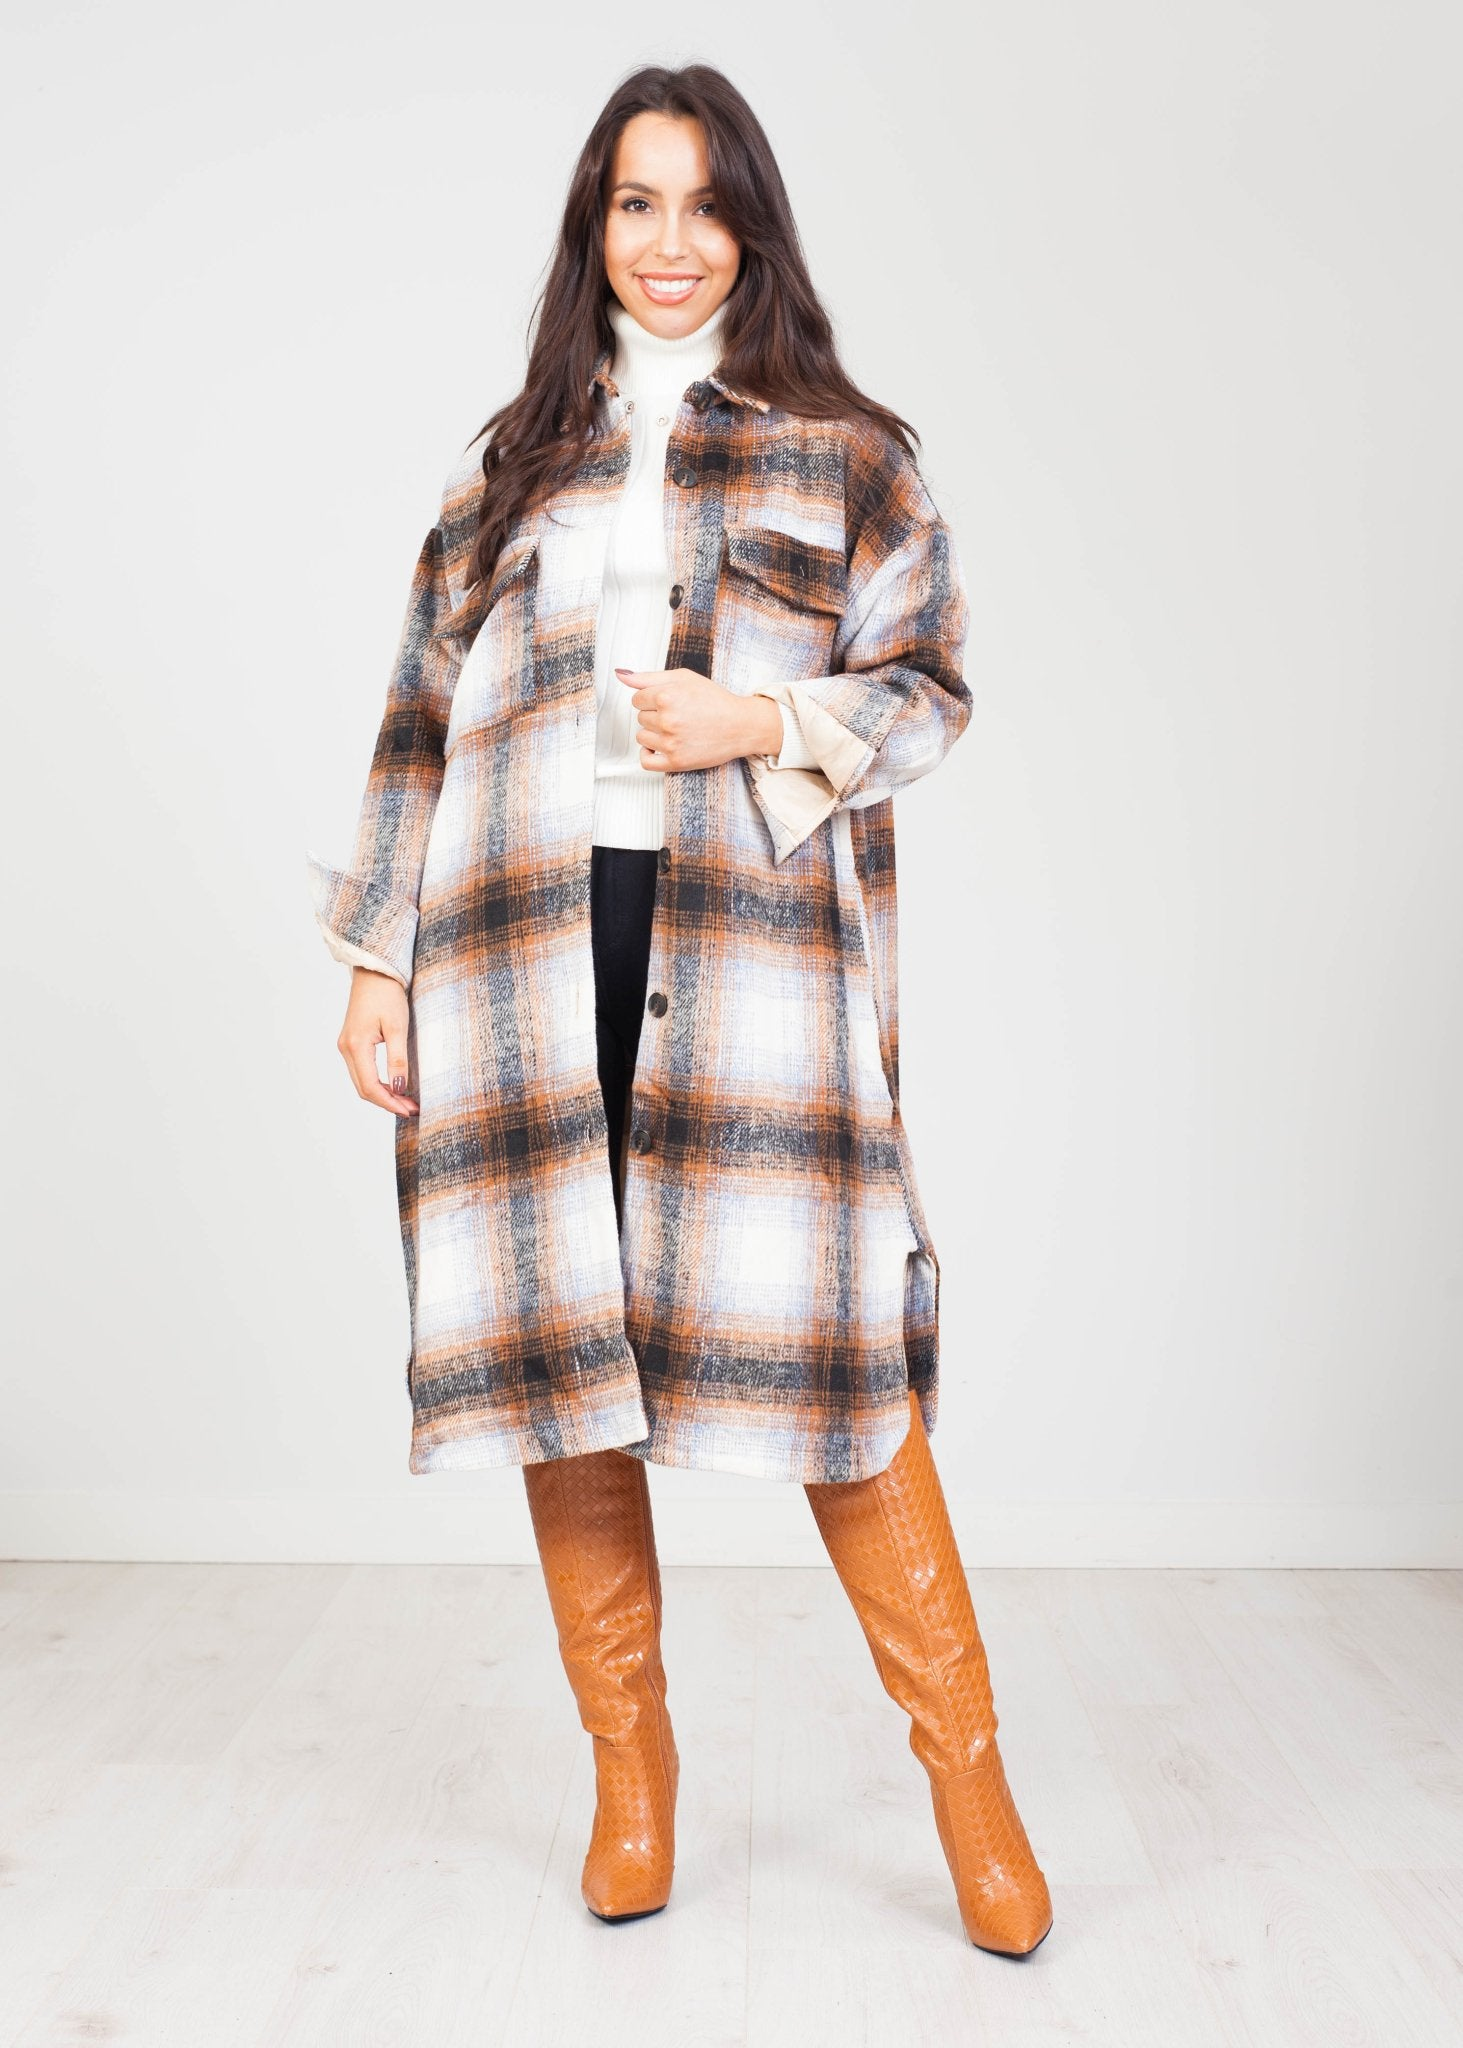 Cherie Longline Shacket in Rust Plaid - The Walk in Wardrobe